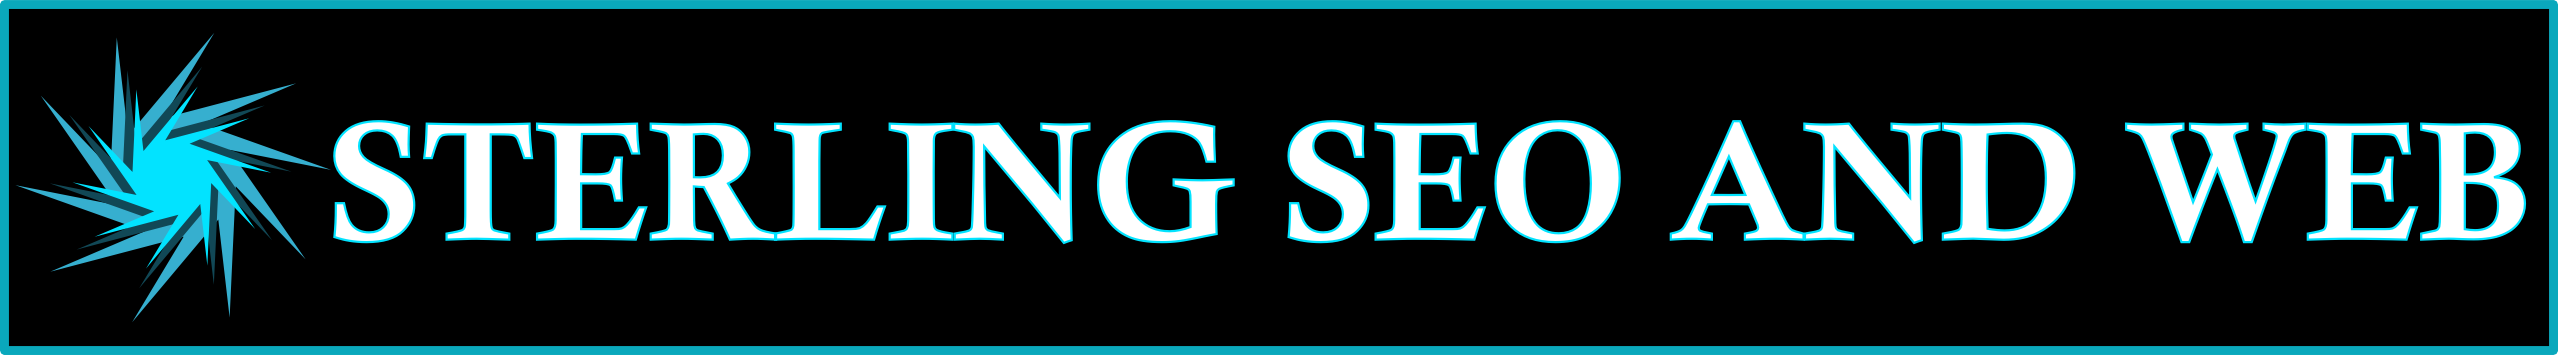 SEO and Web Design | Sterling SEO and WEB | Stuart, Florida